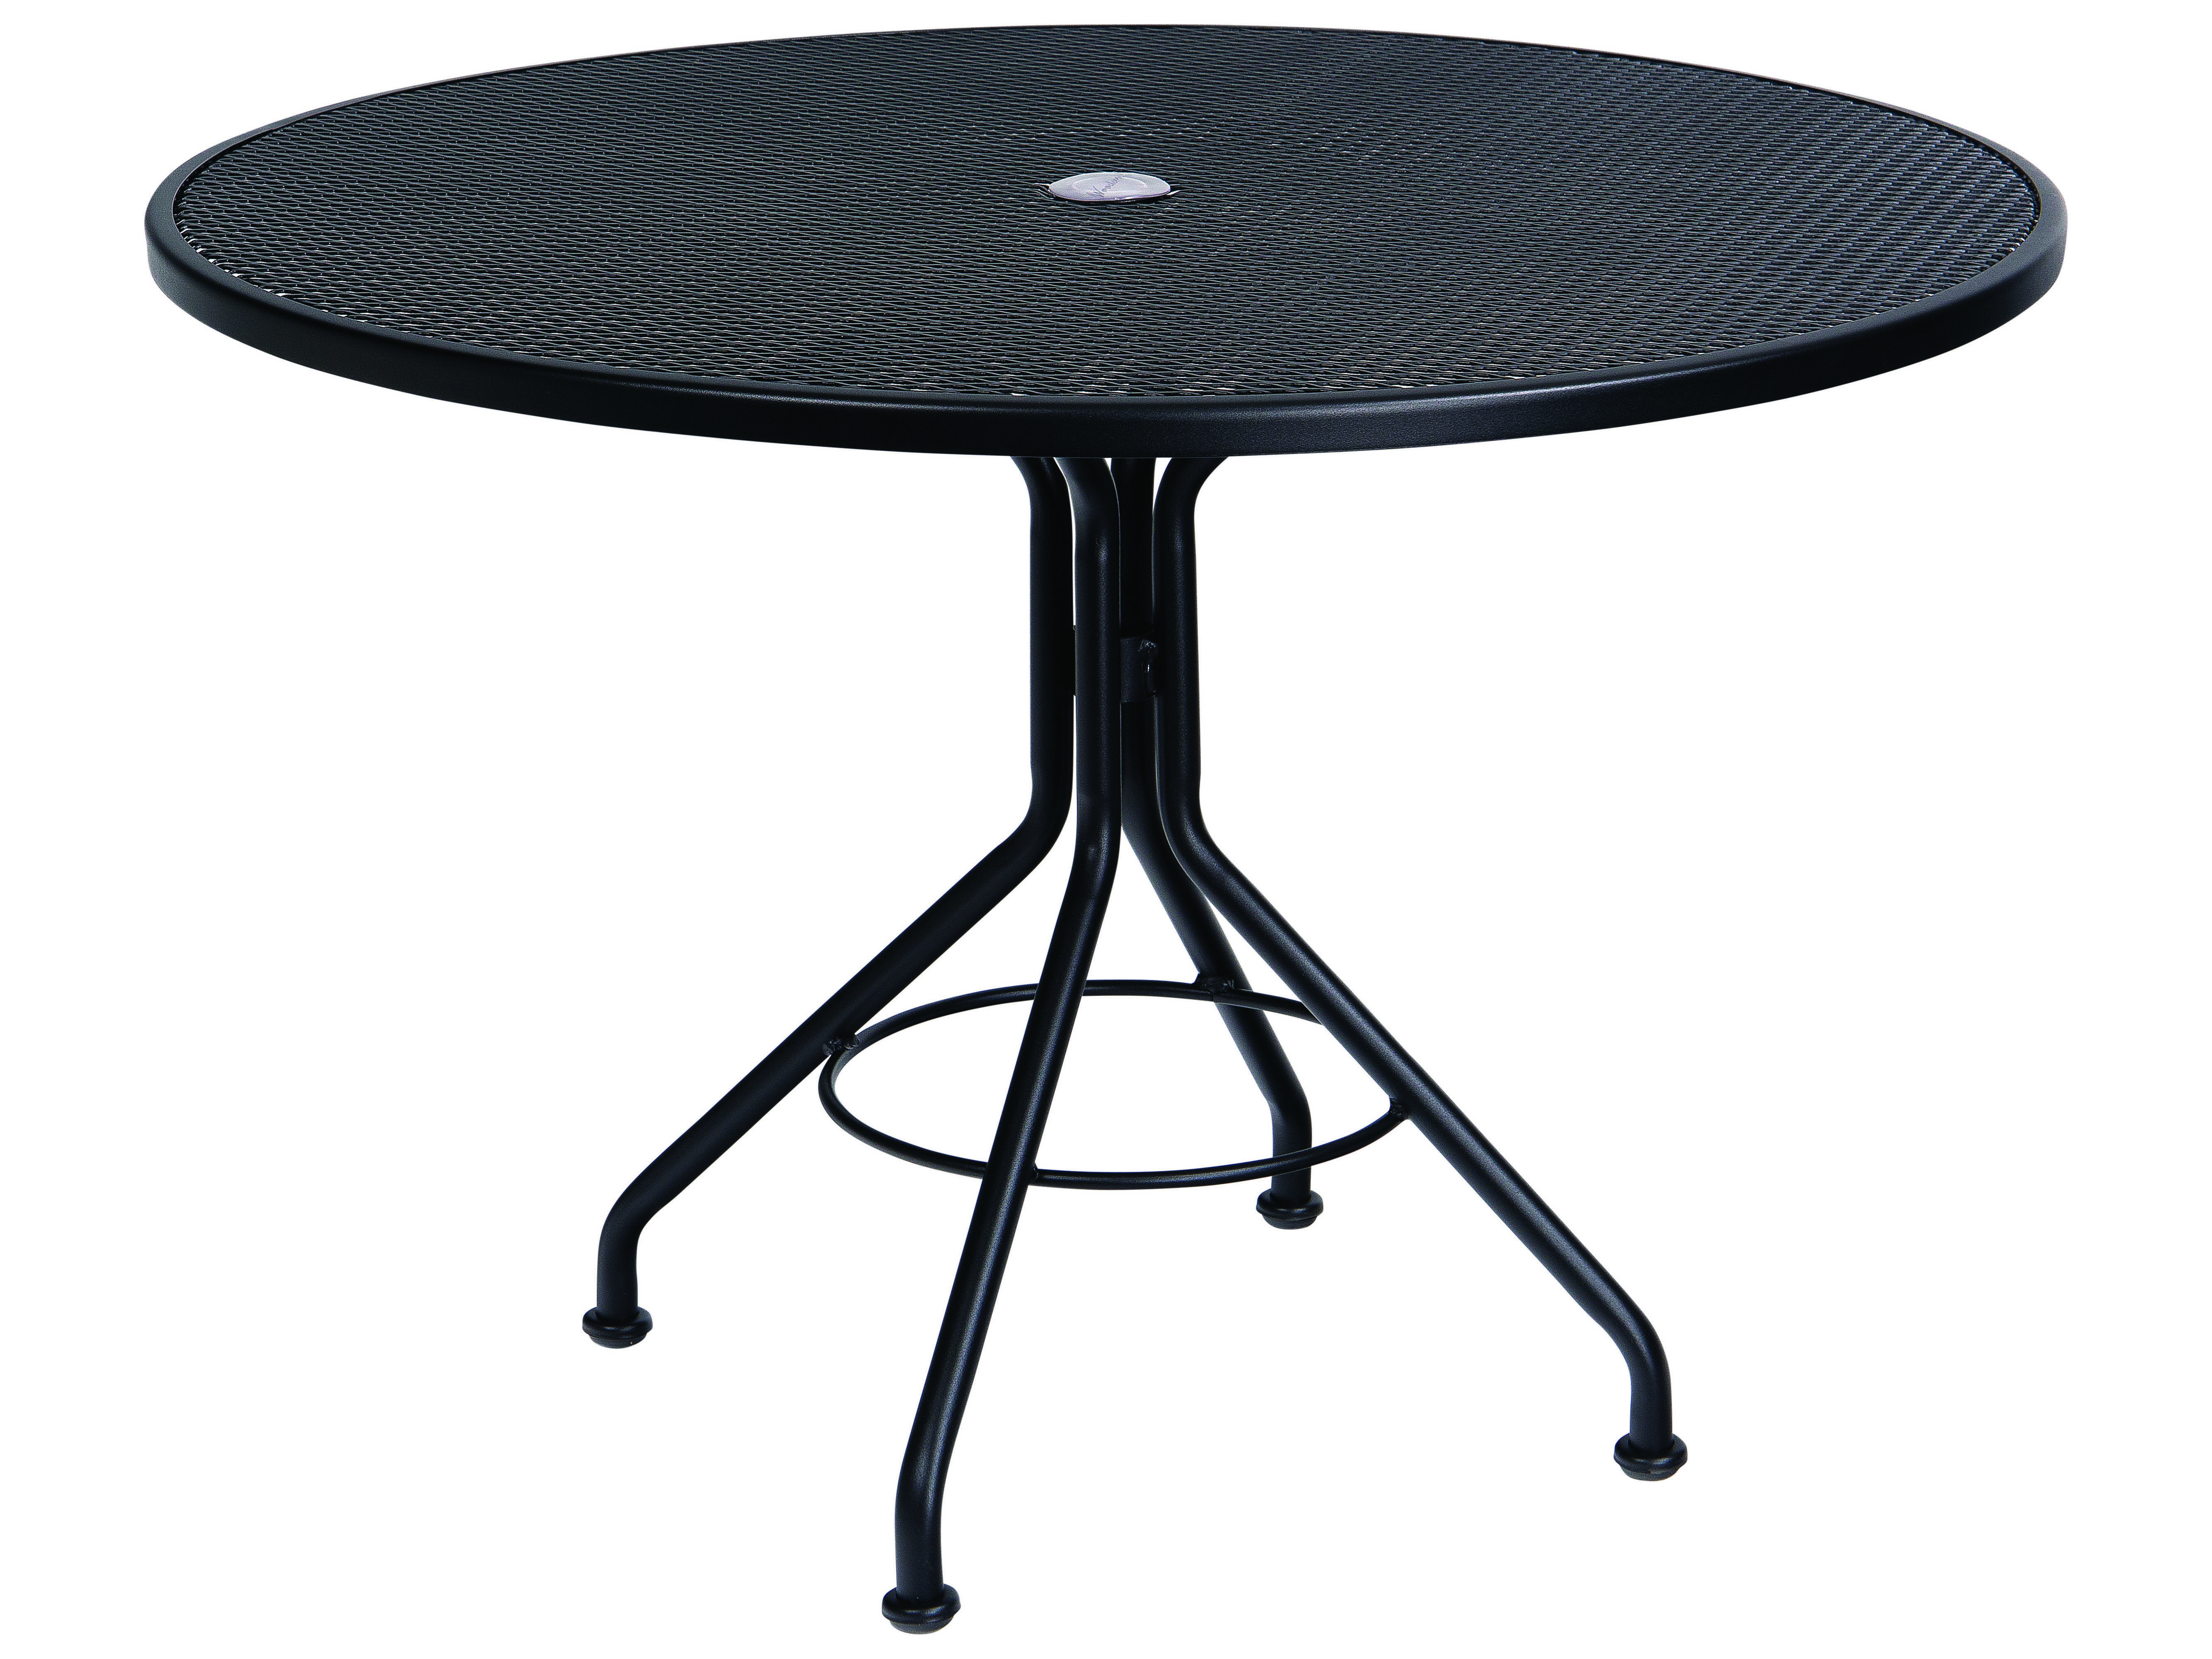 Woodard Wrought Iron Mesh 42 Wide Round Dining Table With Umbrella Hole Wr280136